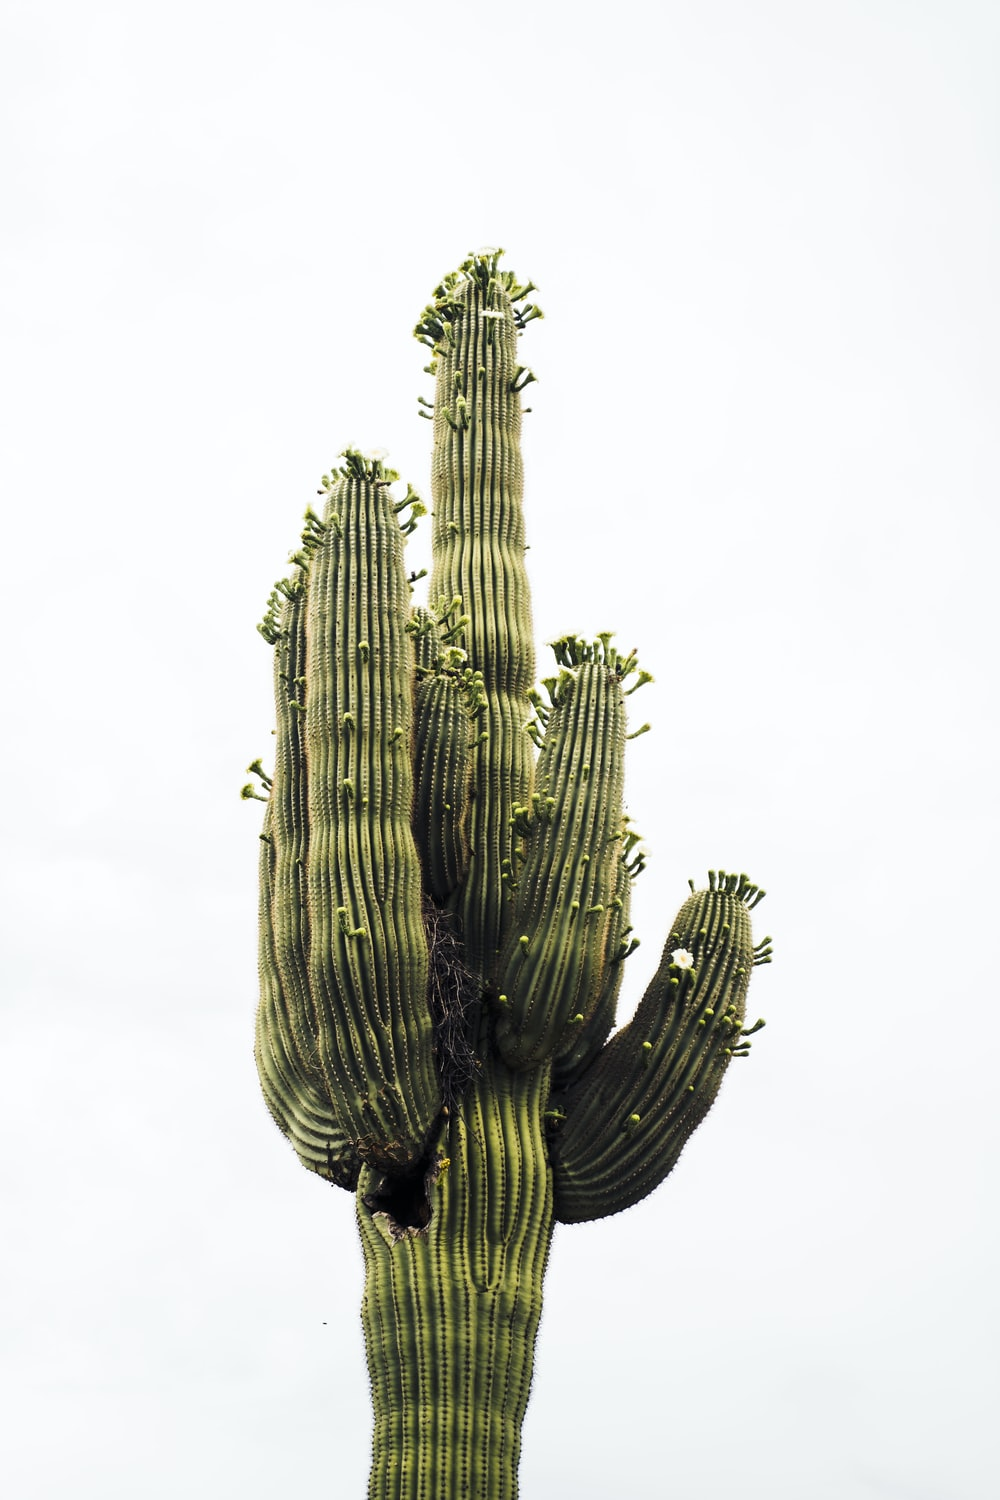 green cactus plant in grayscale photography